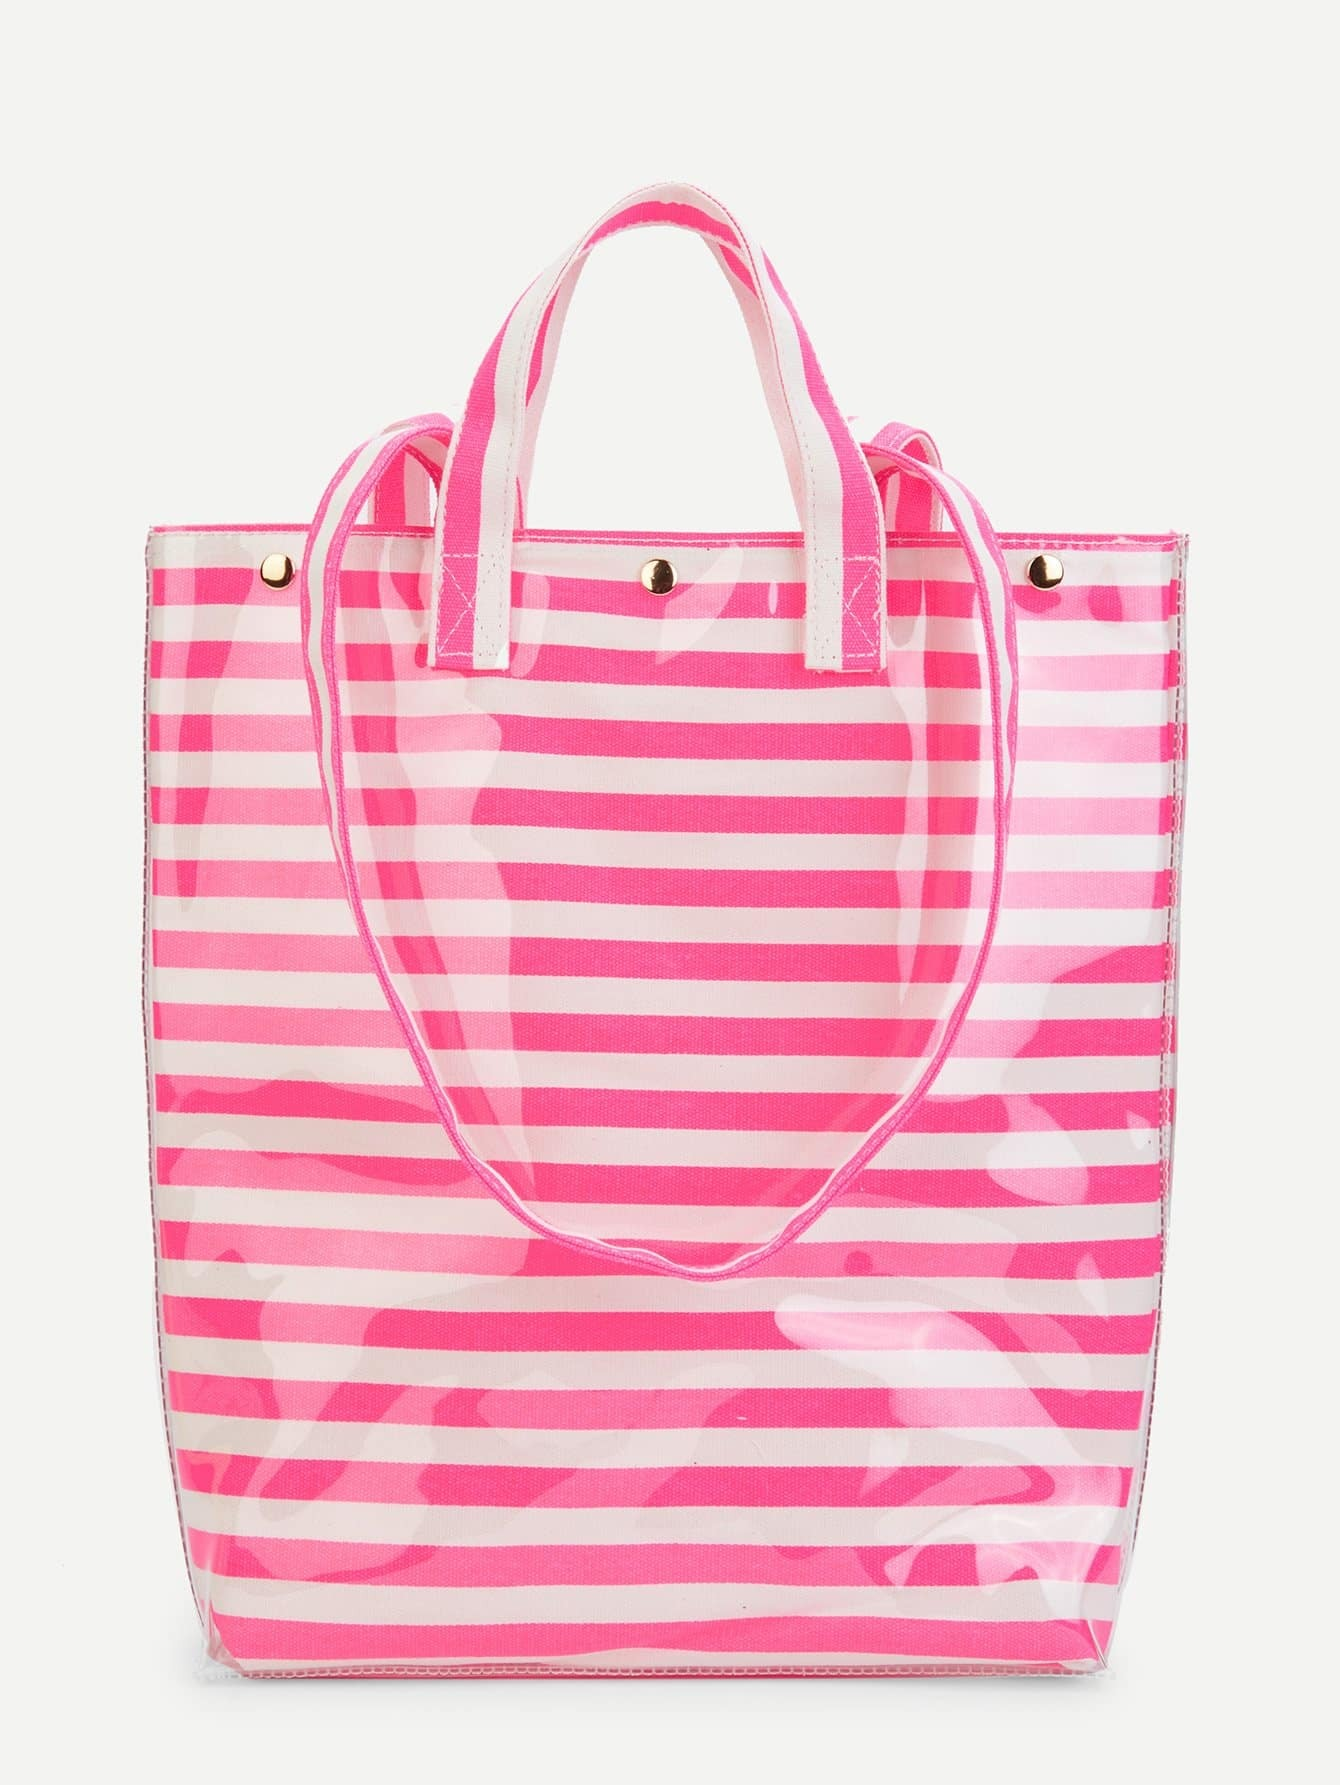 Striped Tote Bag With Convertible Strap средство чистящее techpoint powerclean для очистки плит и духовых шкафов 500 мл